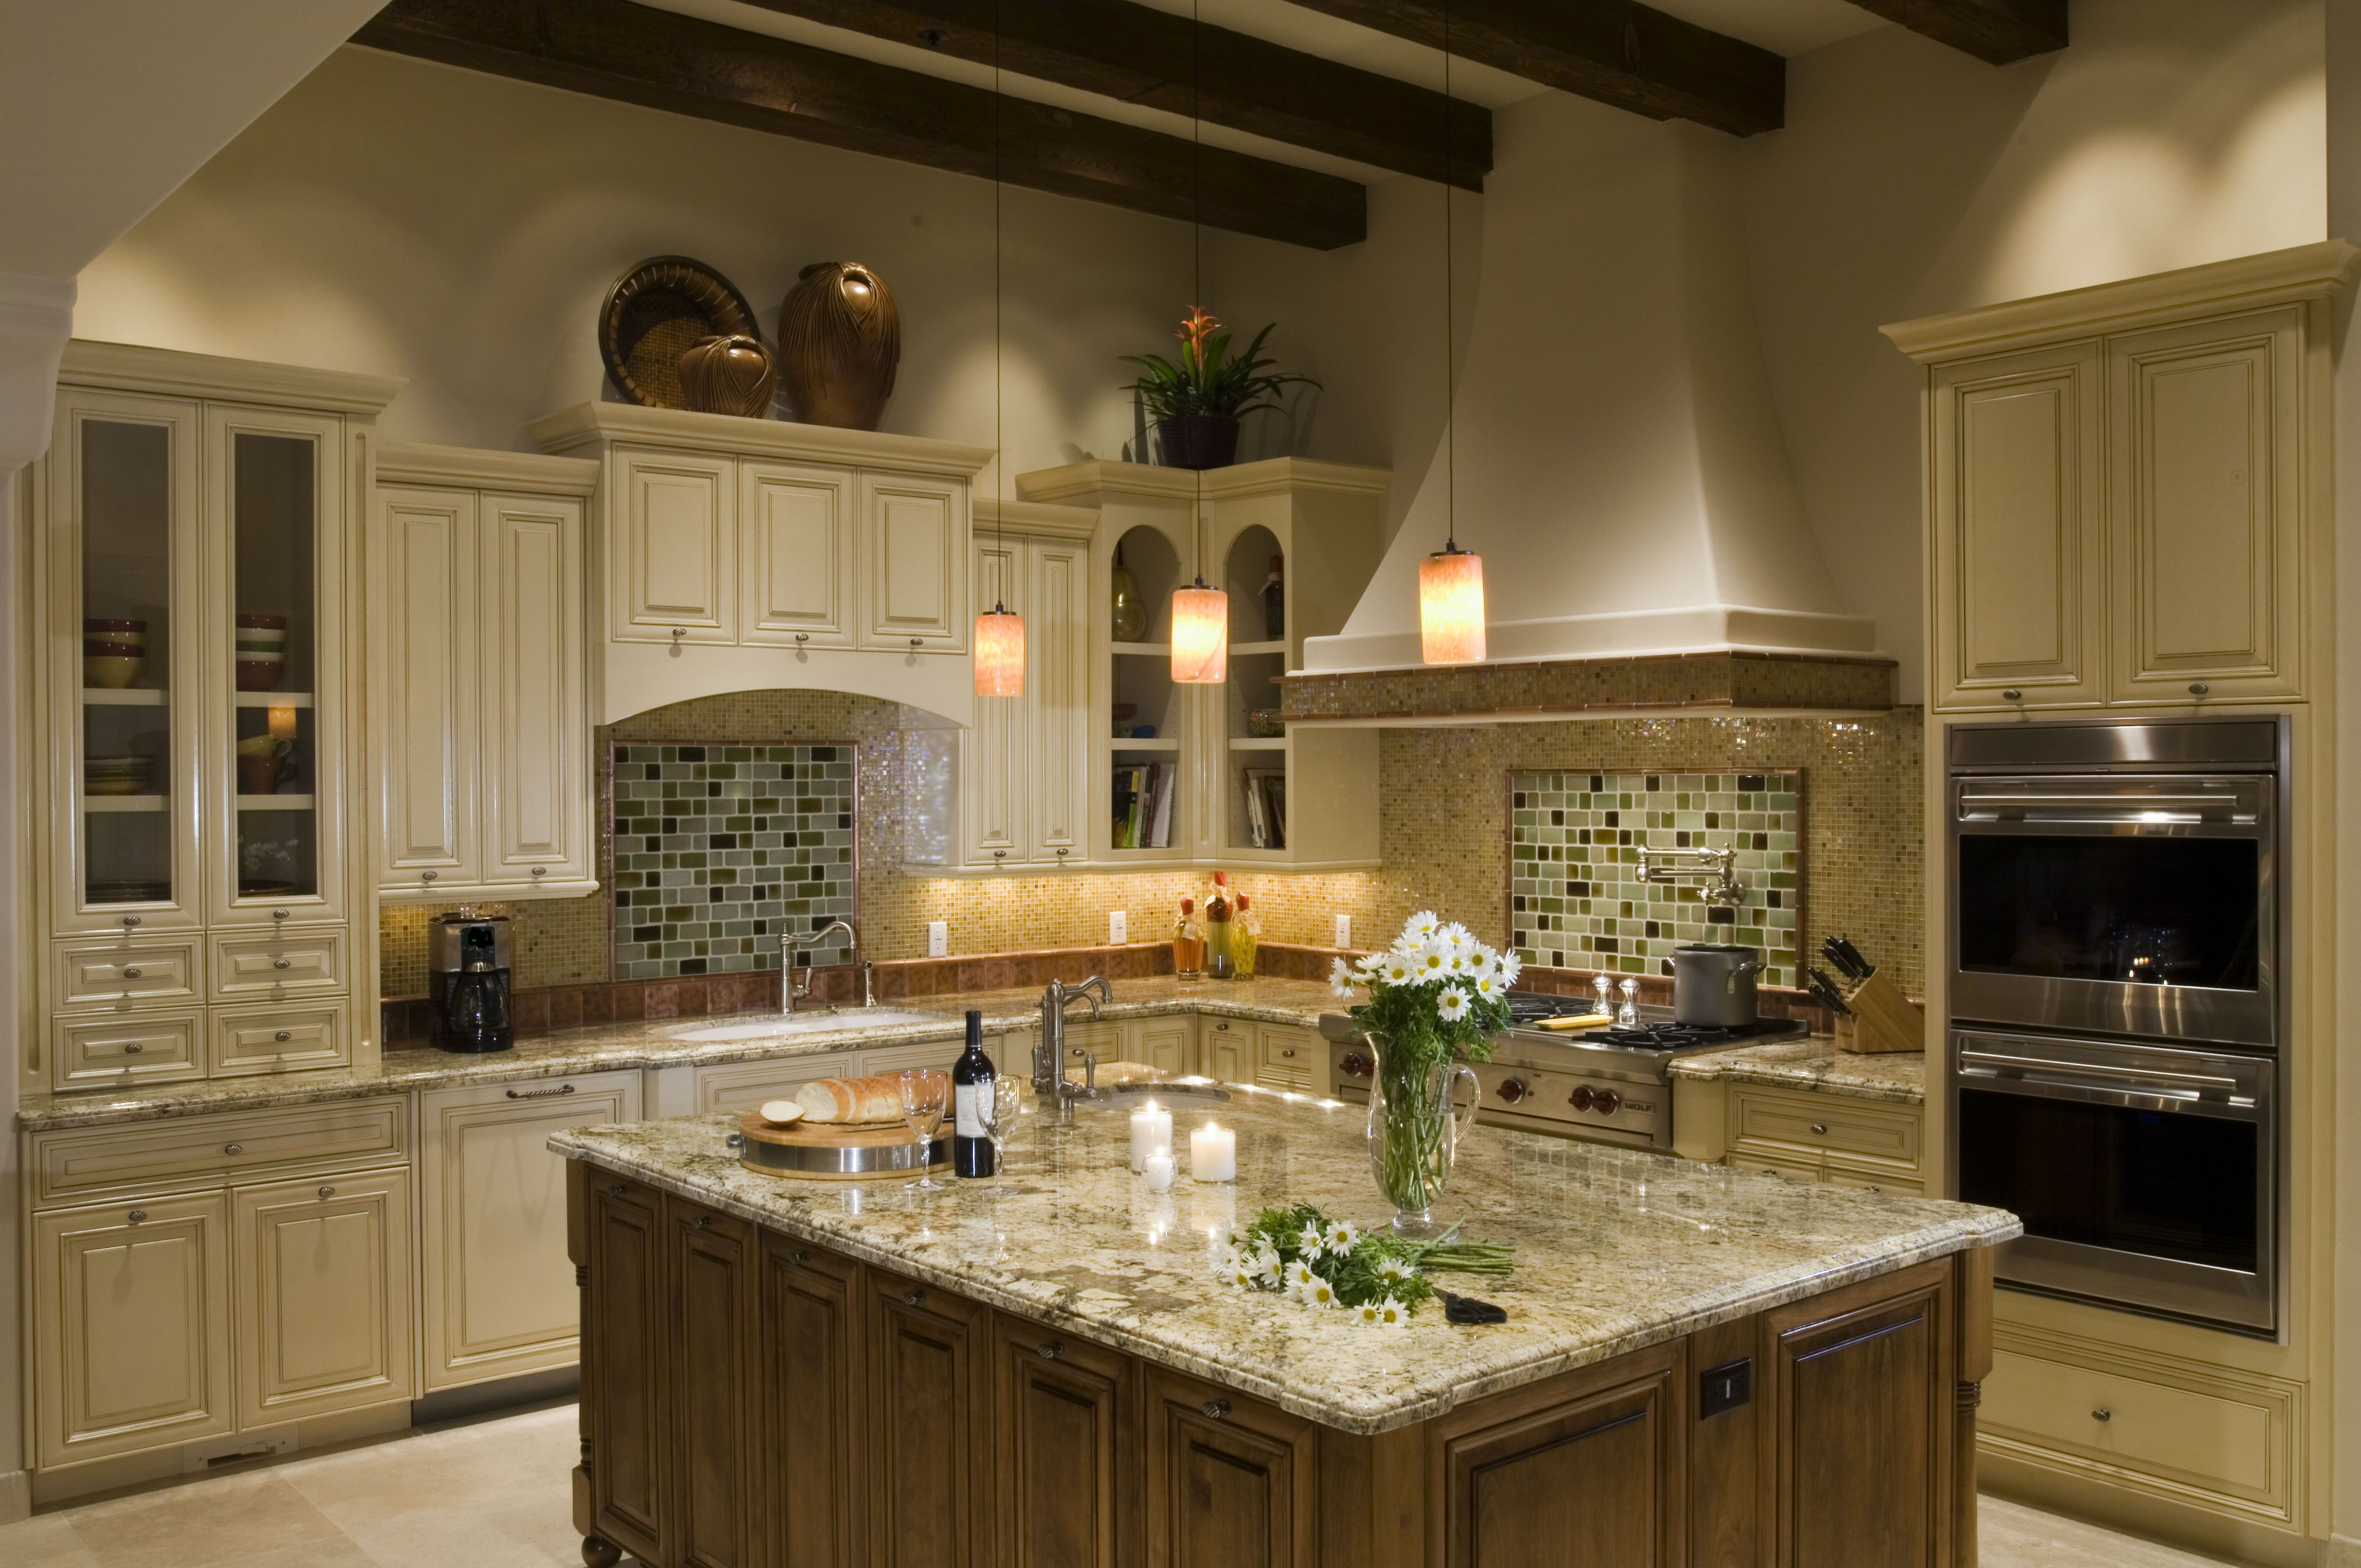 interior to in how room kitchen cabinets on marvelous ideas a new decor decorating modern design redo best designs budget